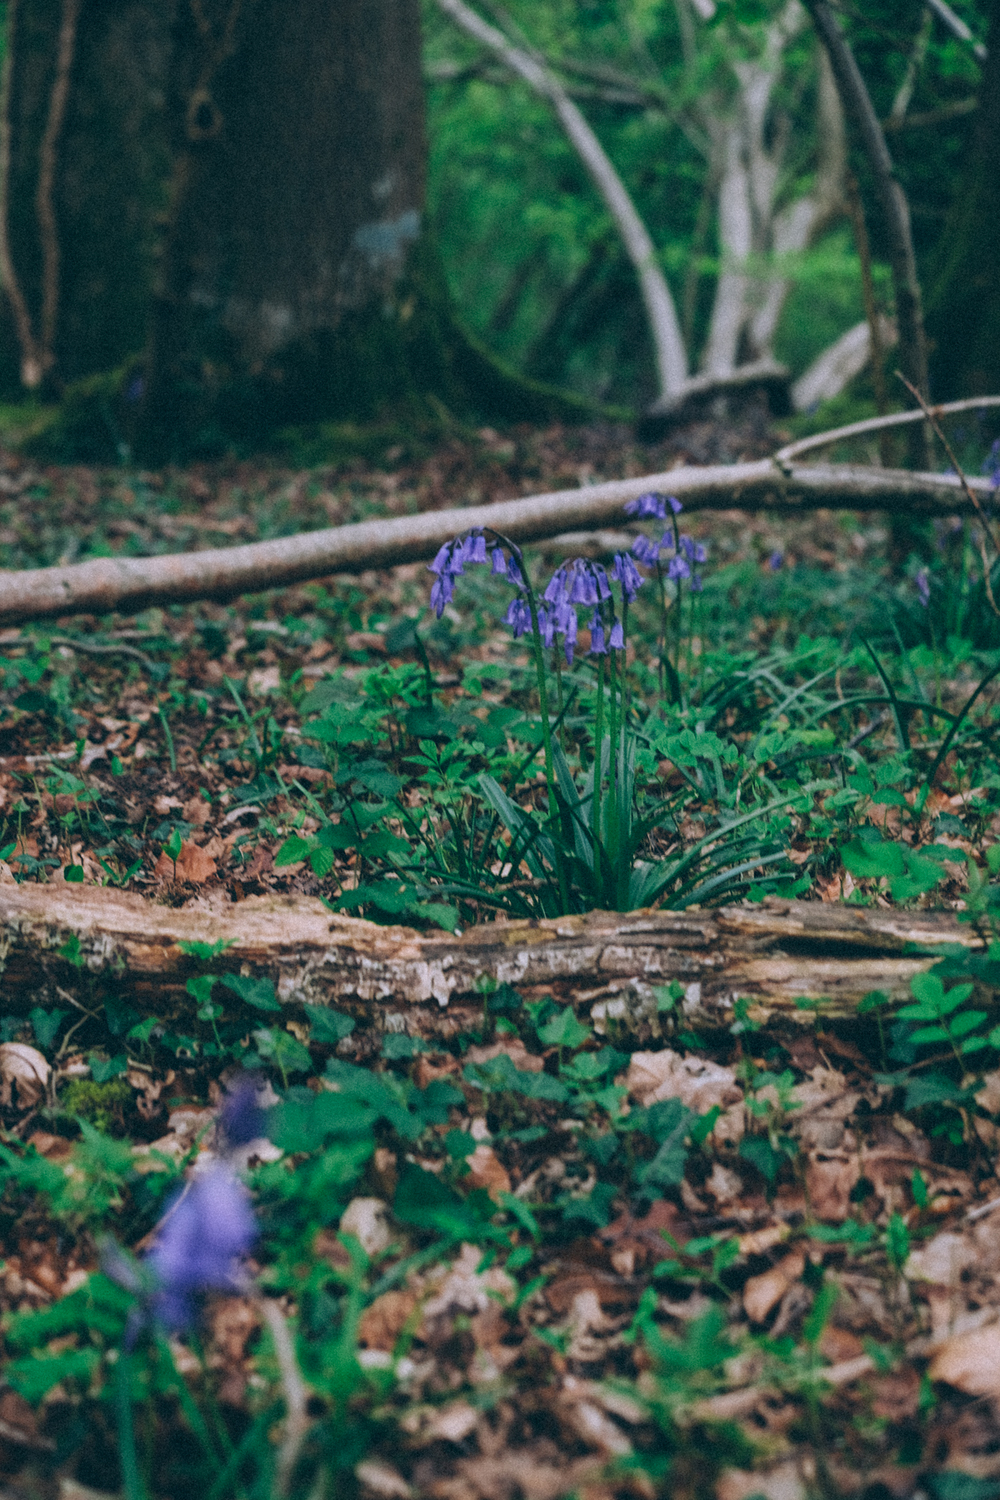 Down to the wood where the blue-bells grow